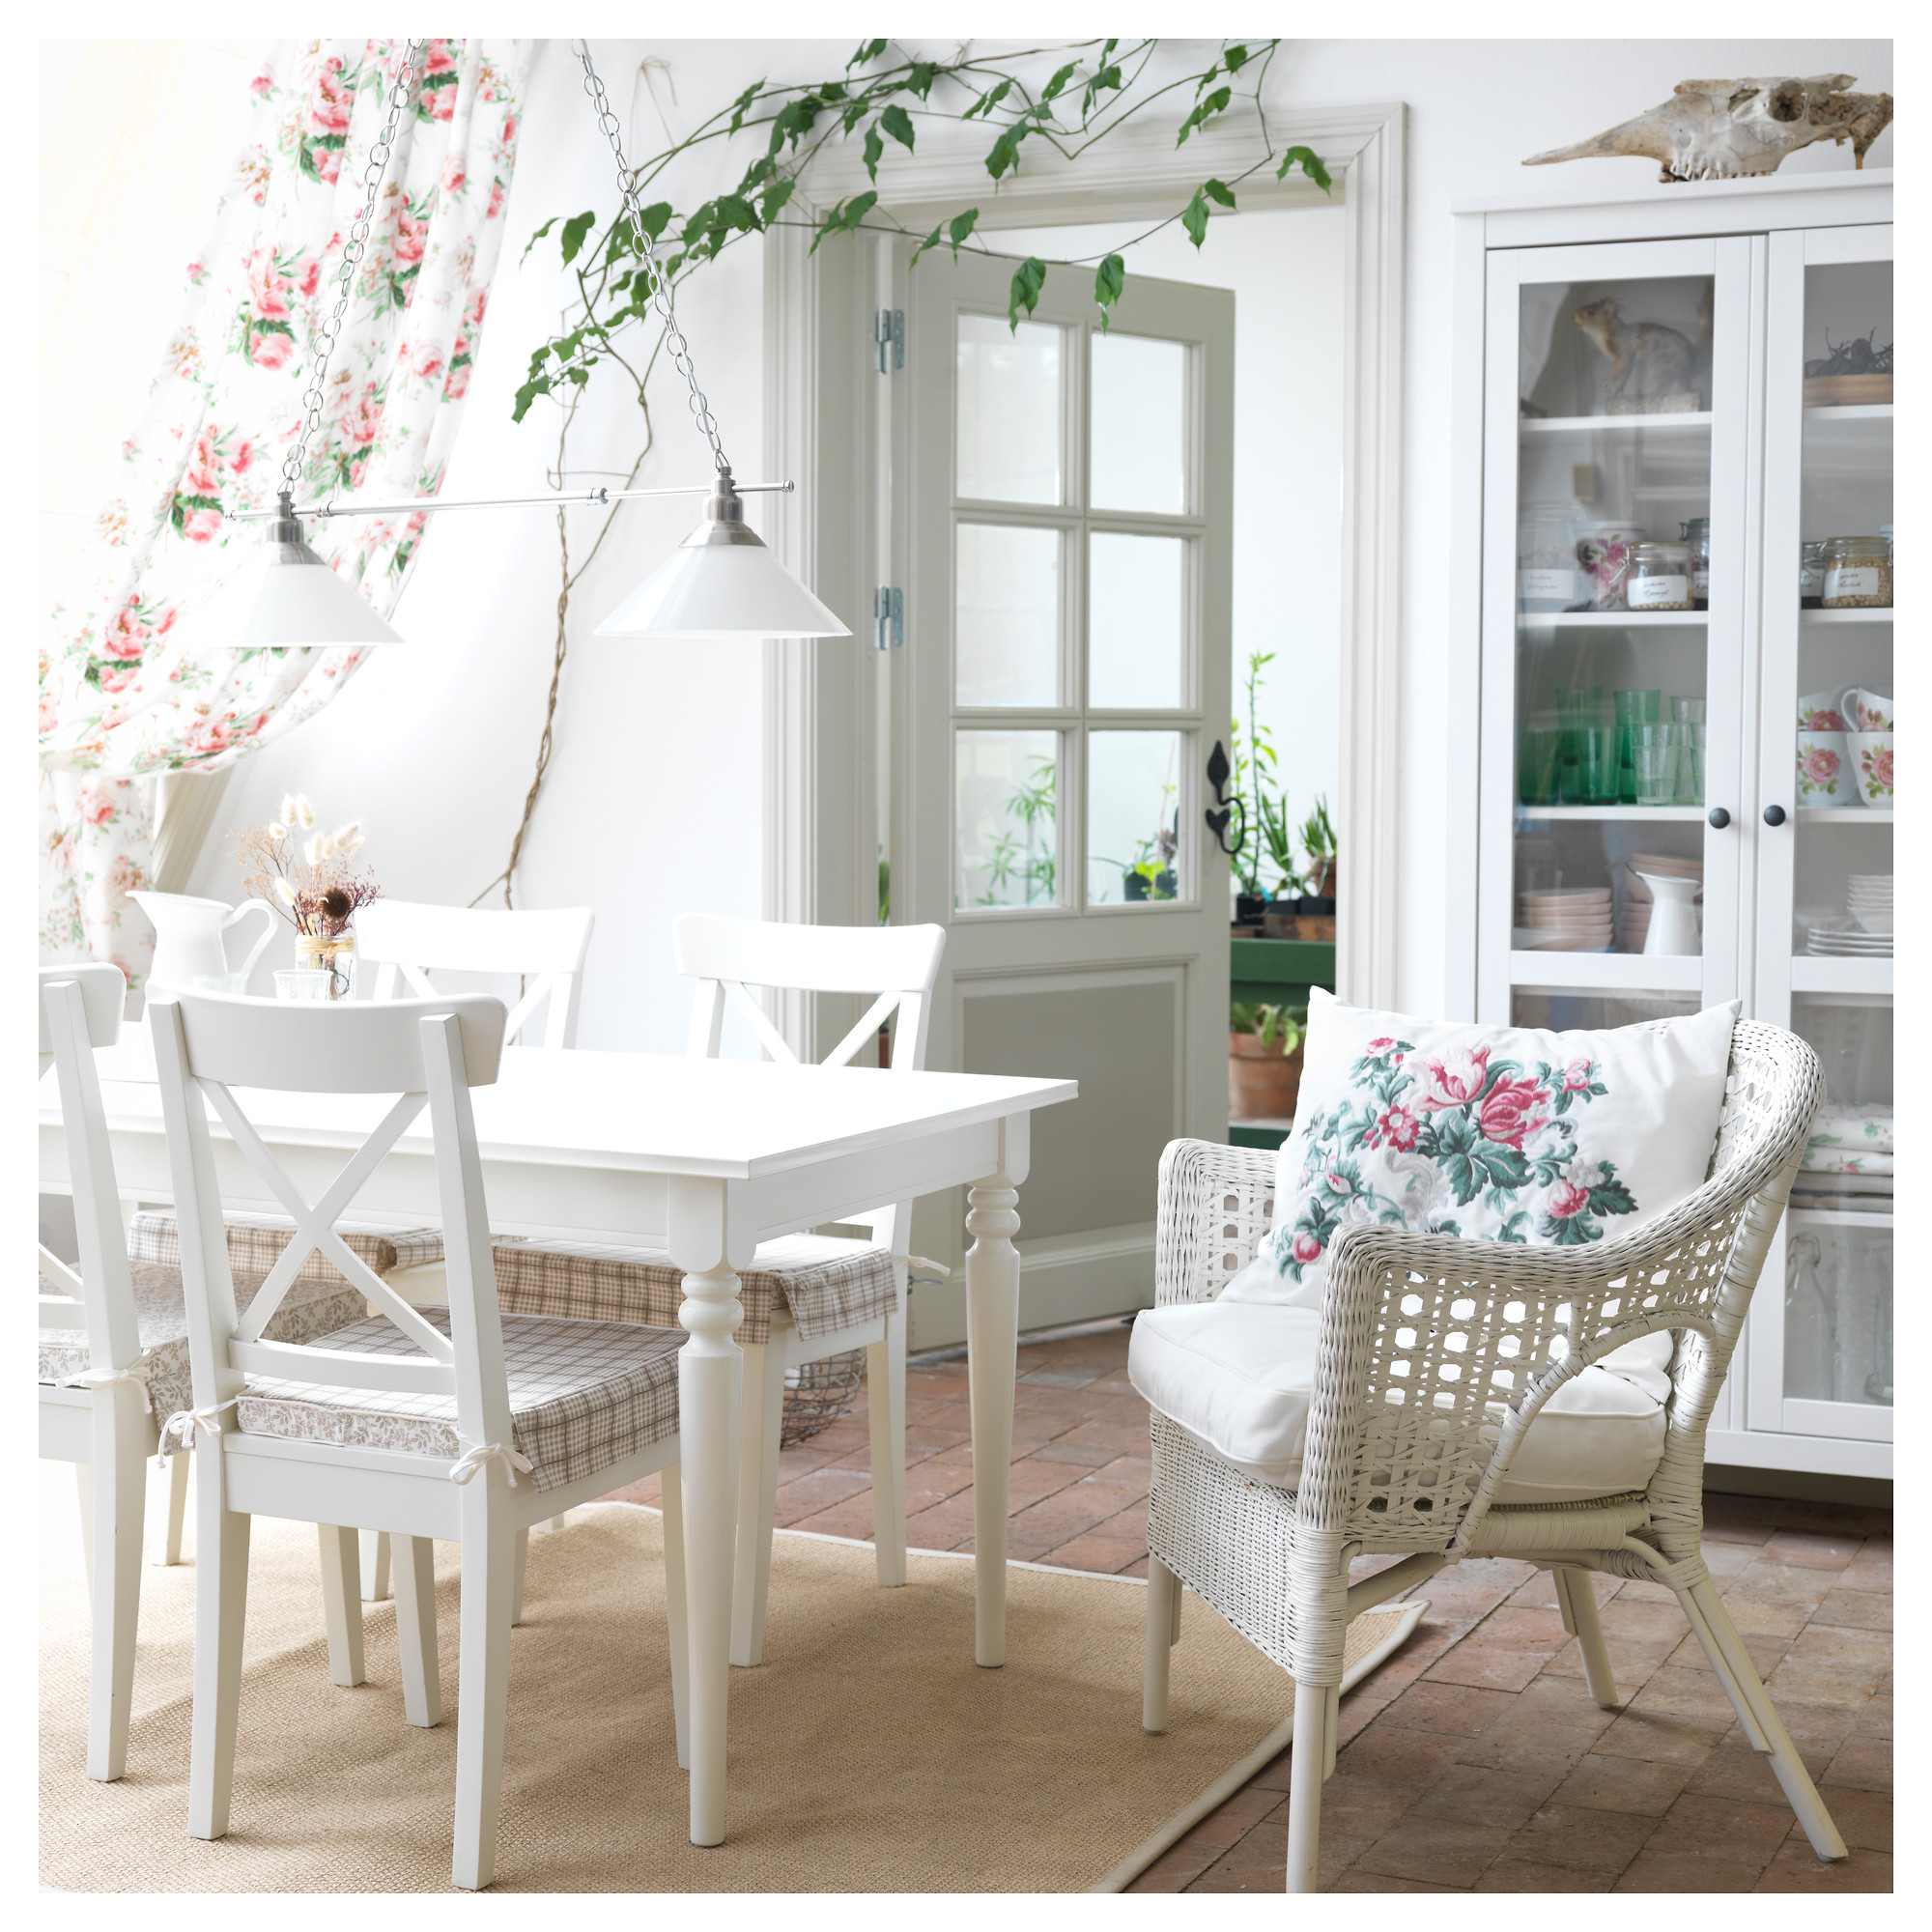 Shop Dining Room Tables at Ashley Furniture HomeStore Gather with your family around a beautiful Modern Glass or Wood Dining Room Table